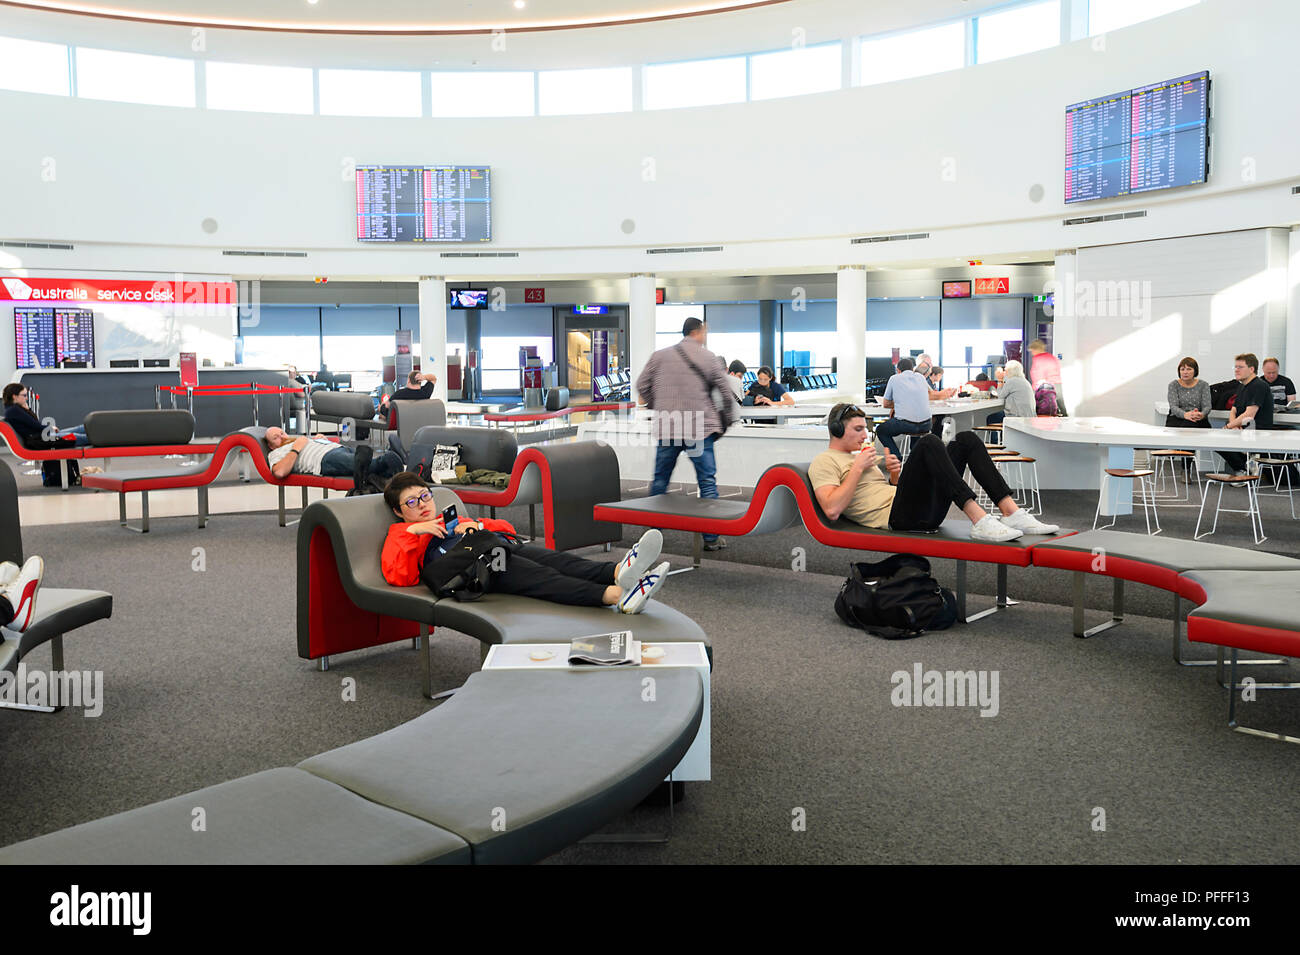 Passengers relaxing on modern seats at Brisbane Airport, Queensland, QLD, Australia - Stock Image